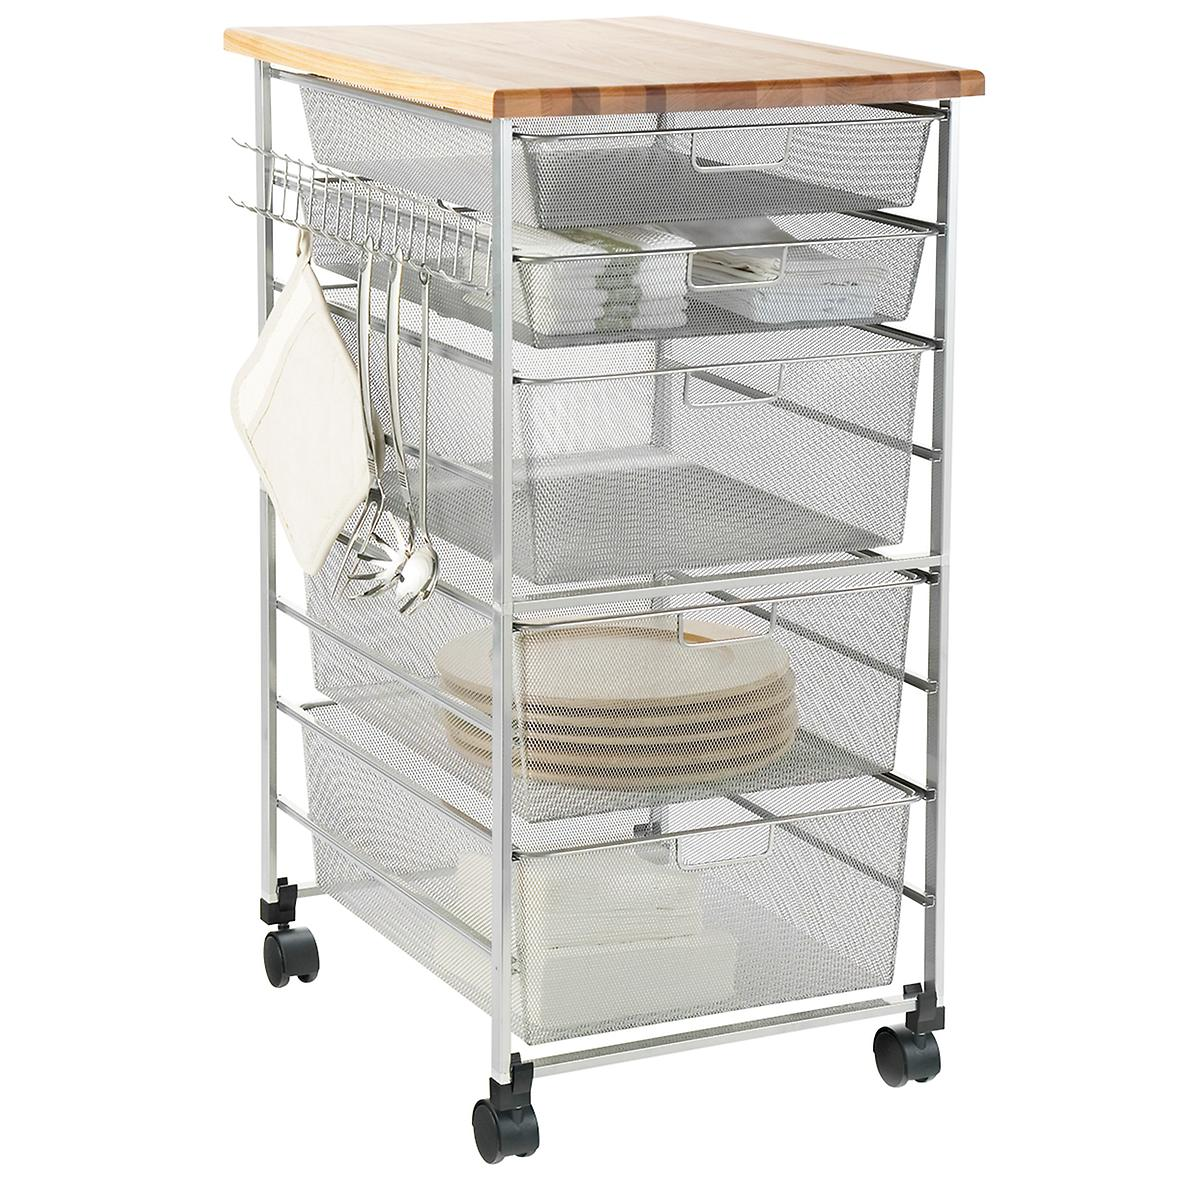 Elfa 5 drawer kitchen cart   with mesh drawers, butcher block top, and casters